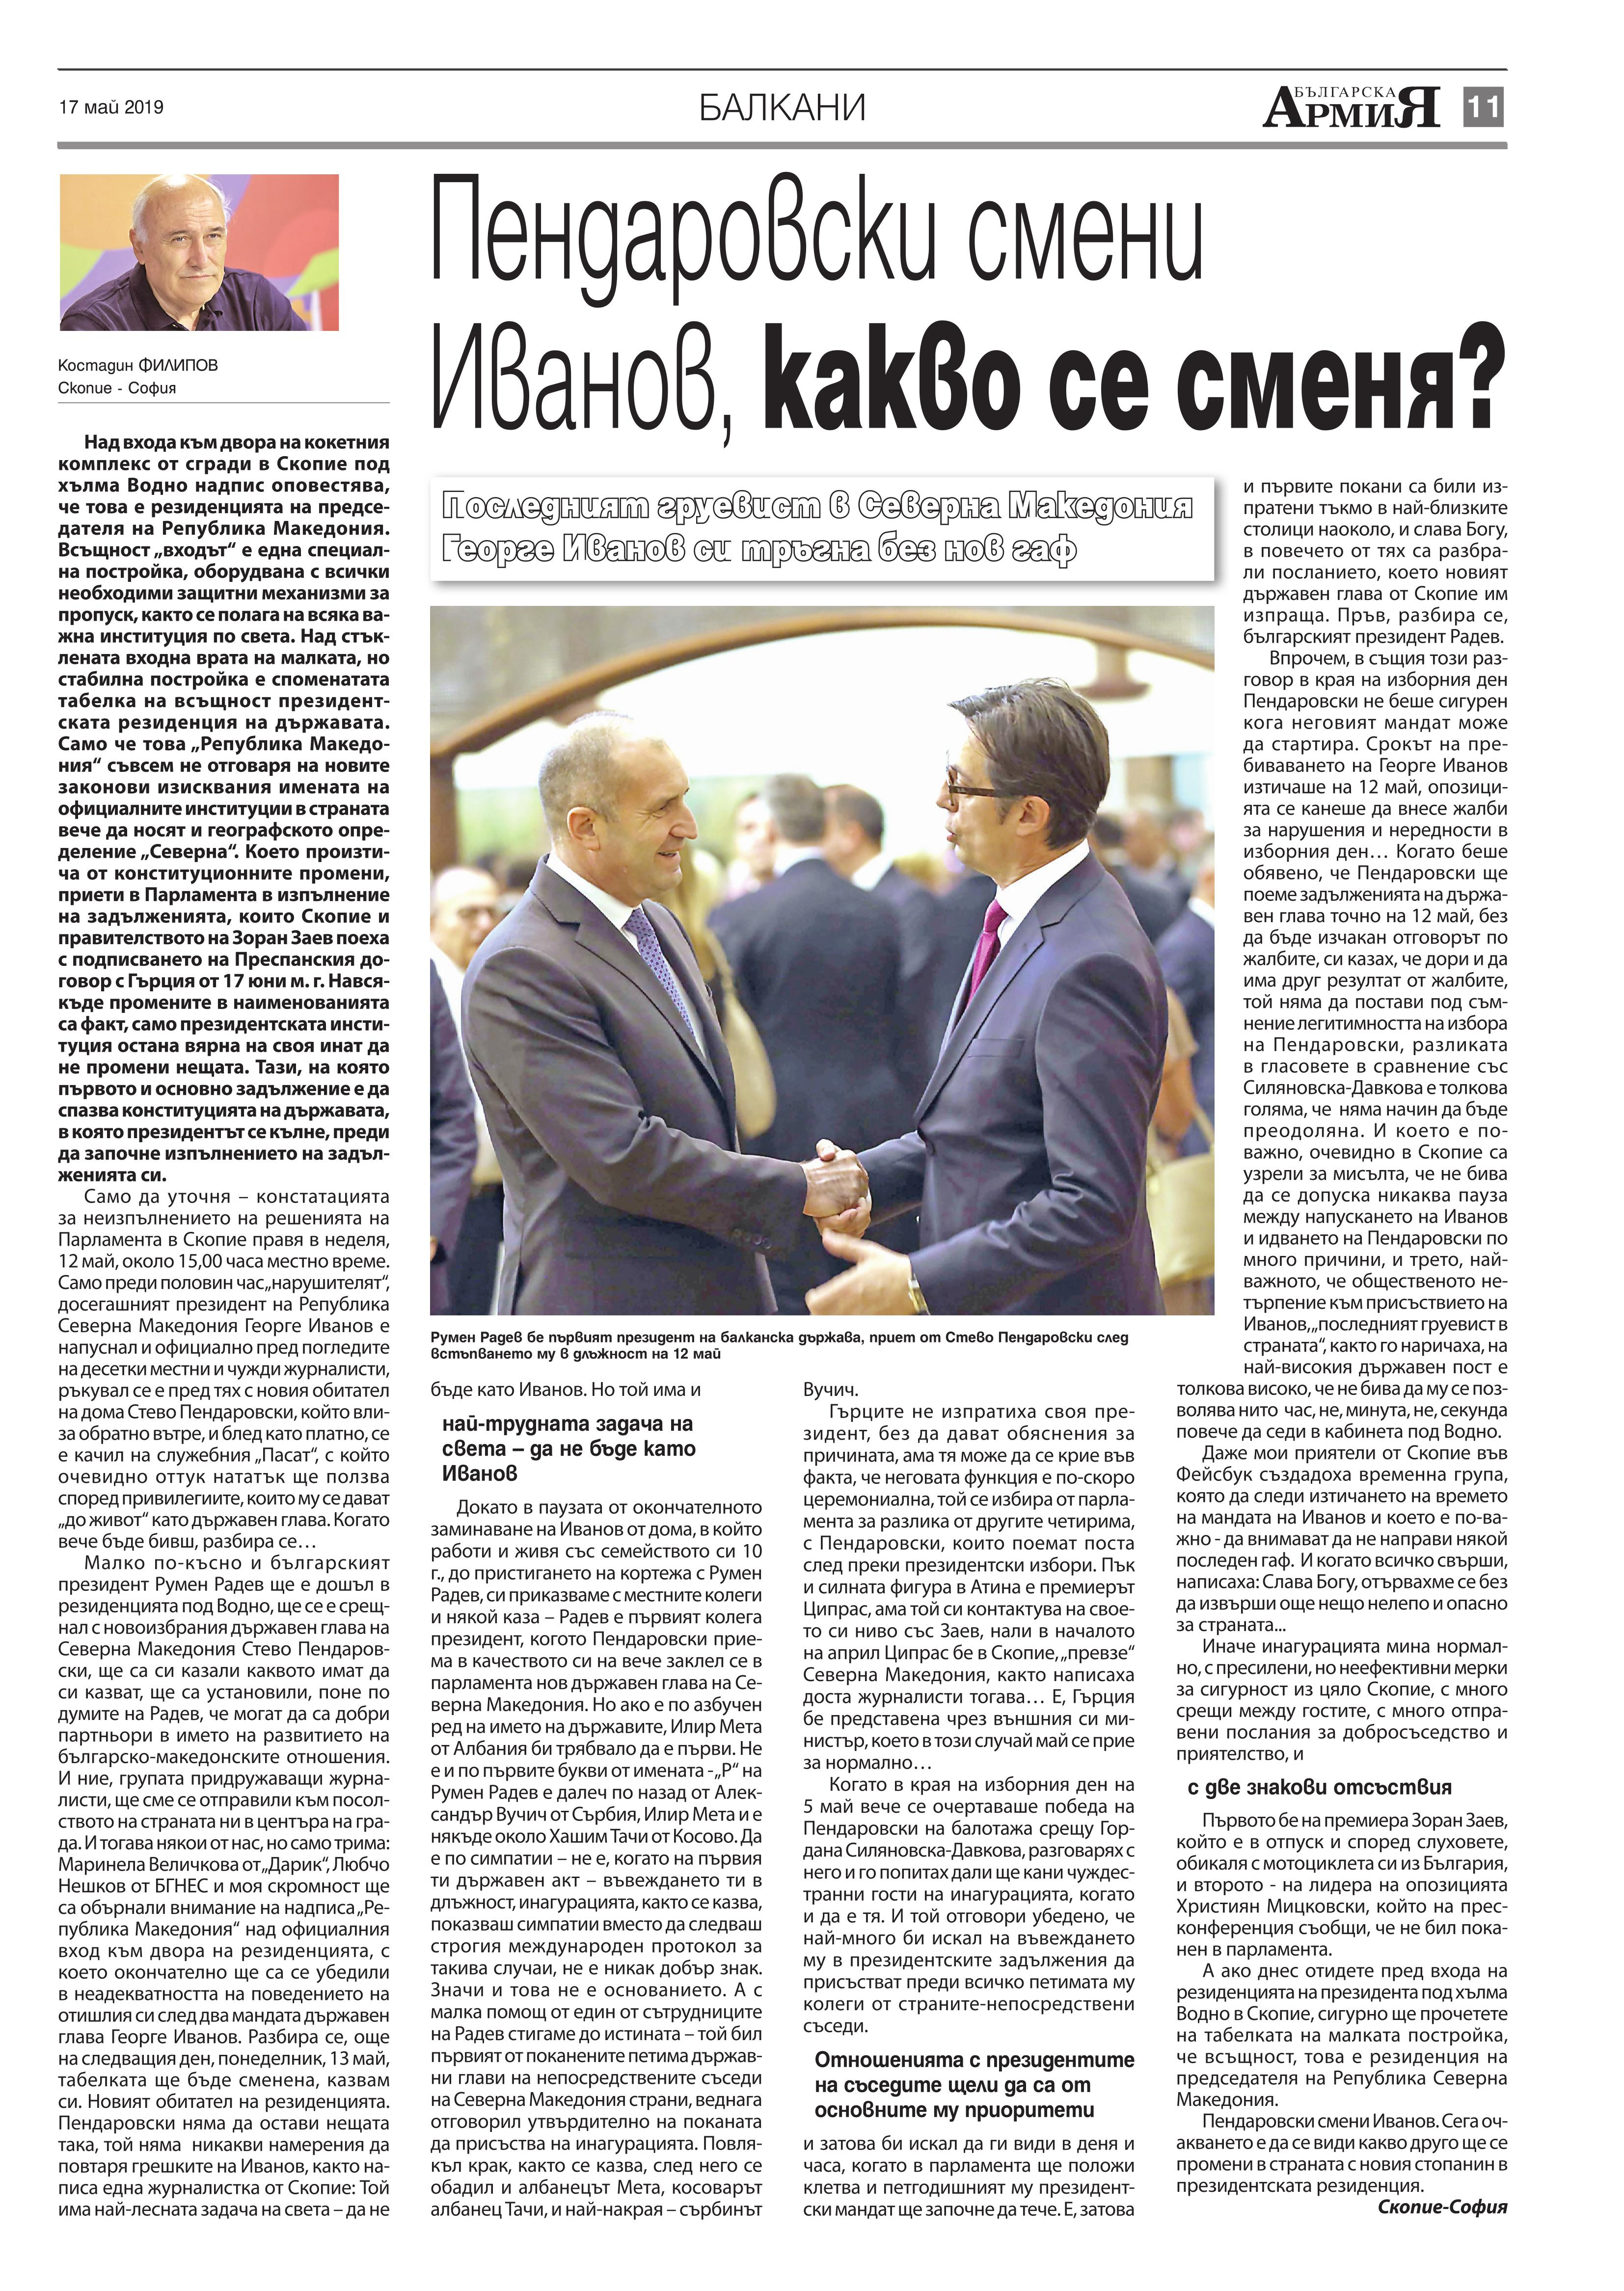 https://armymedia.bg/wp-content/uploads/2015/06/11.page1_-95.jpg